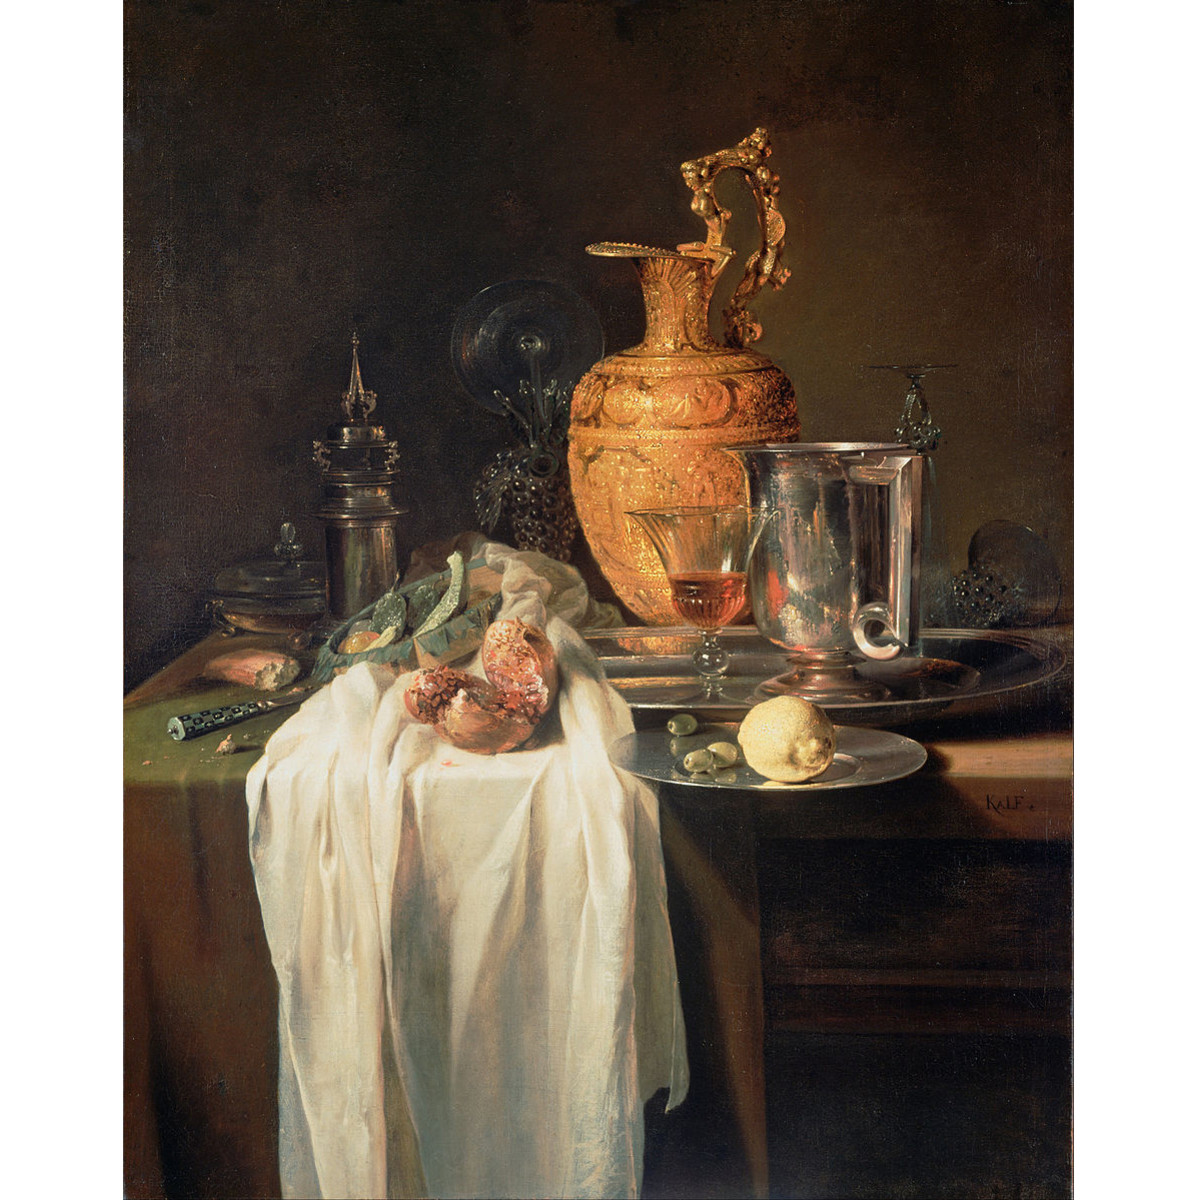 Kalf, Willem - Still Life with Ewer, Vessels and Pomegranate